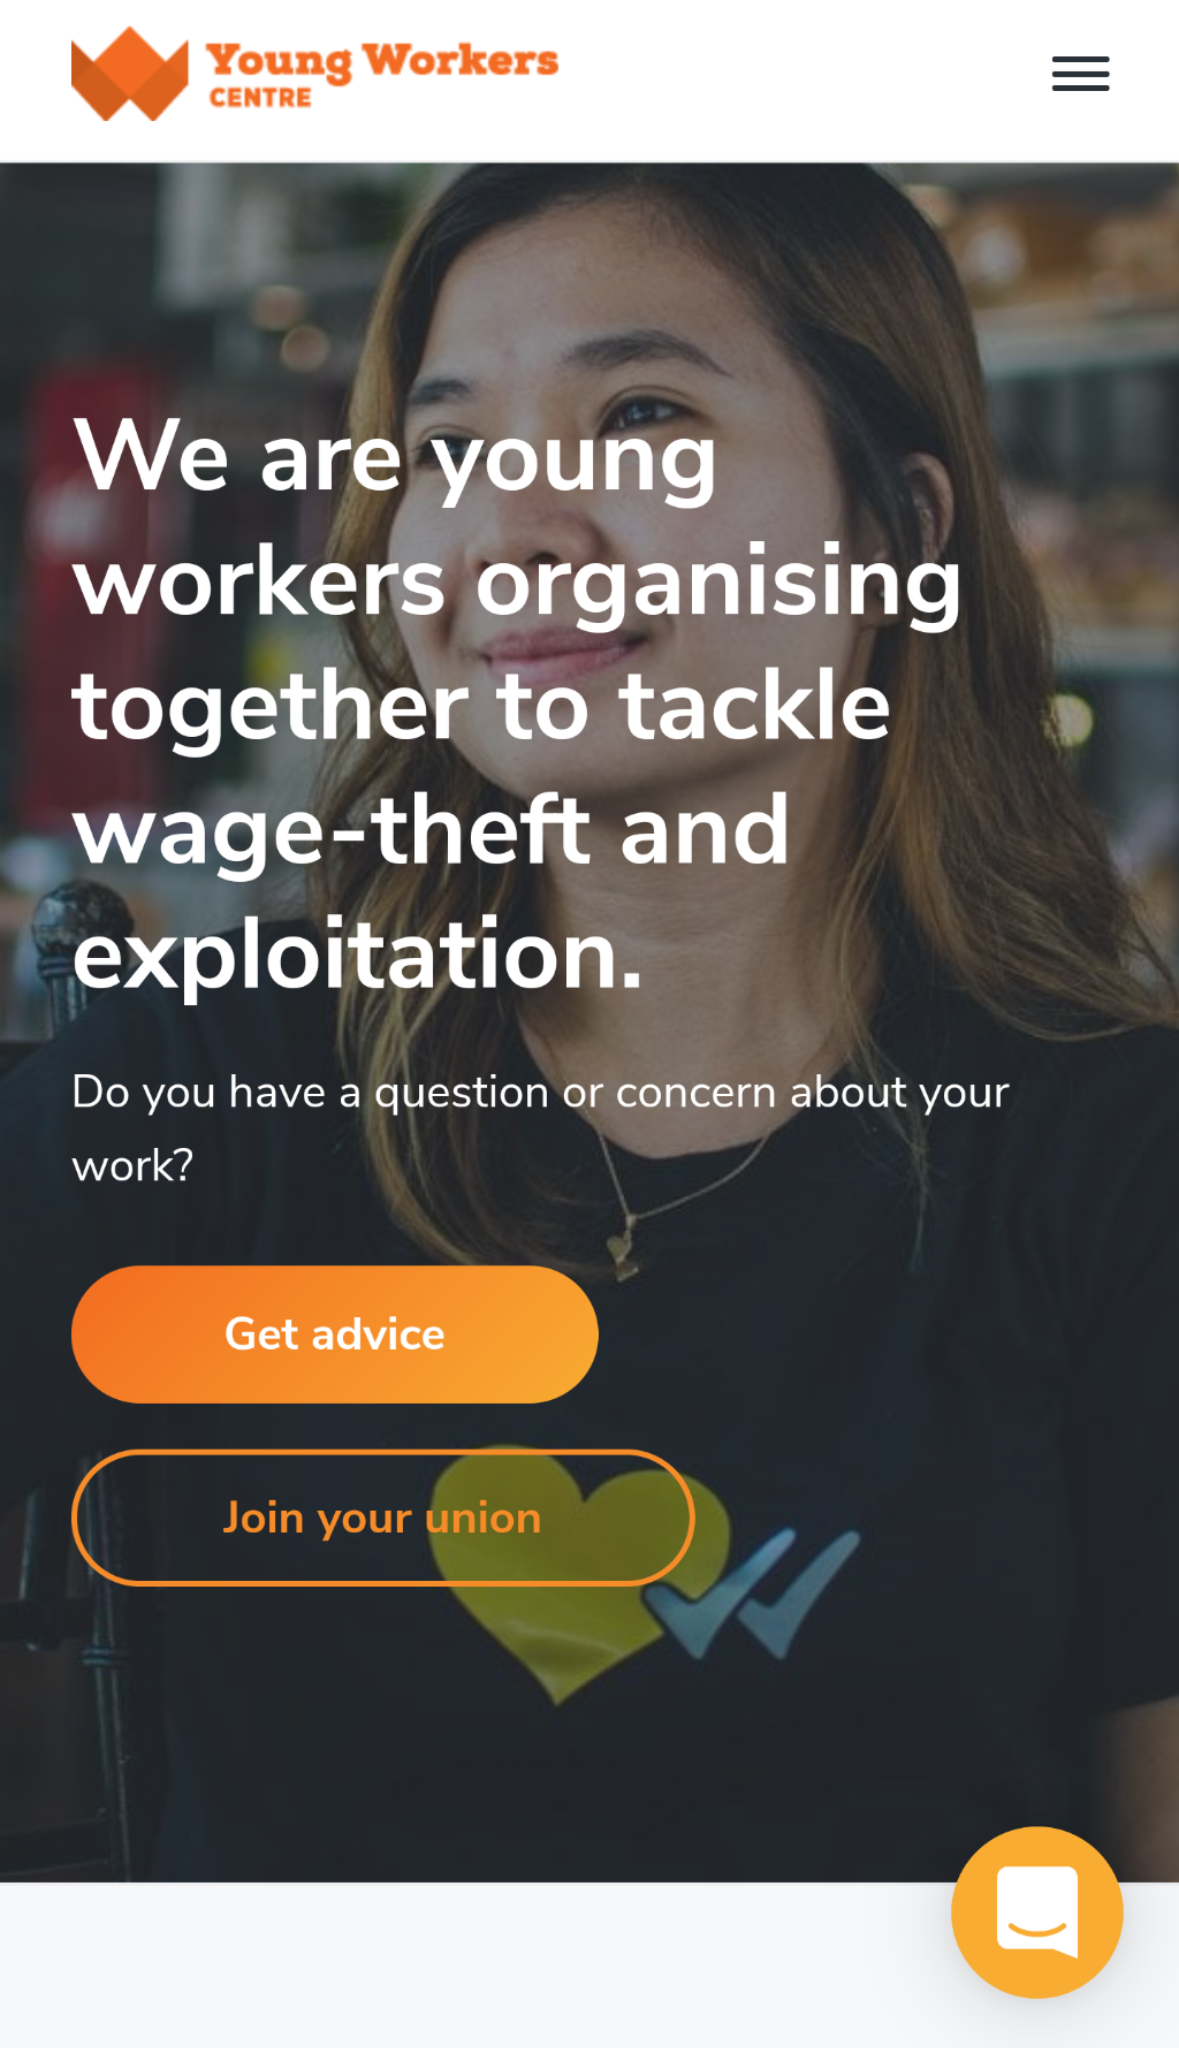 Young Workers Centre website